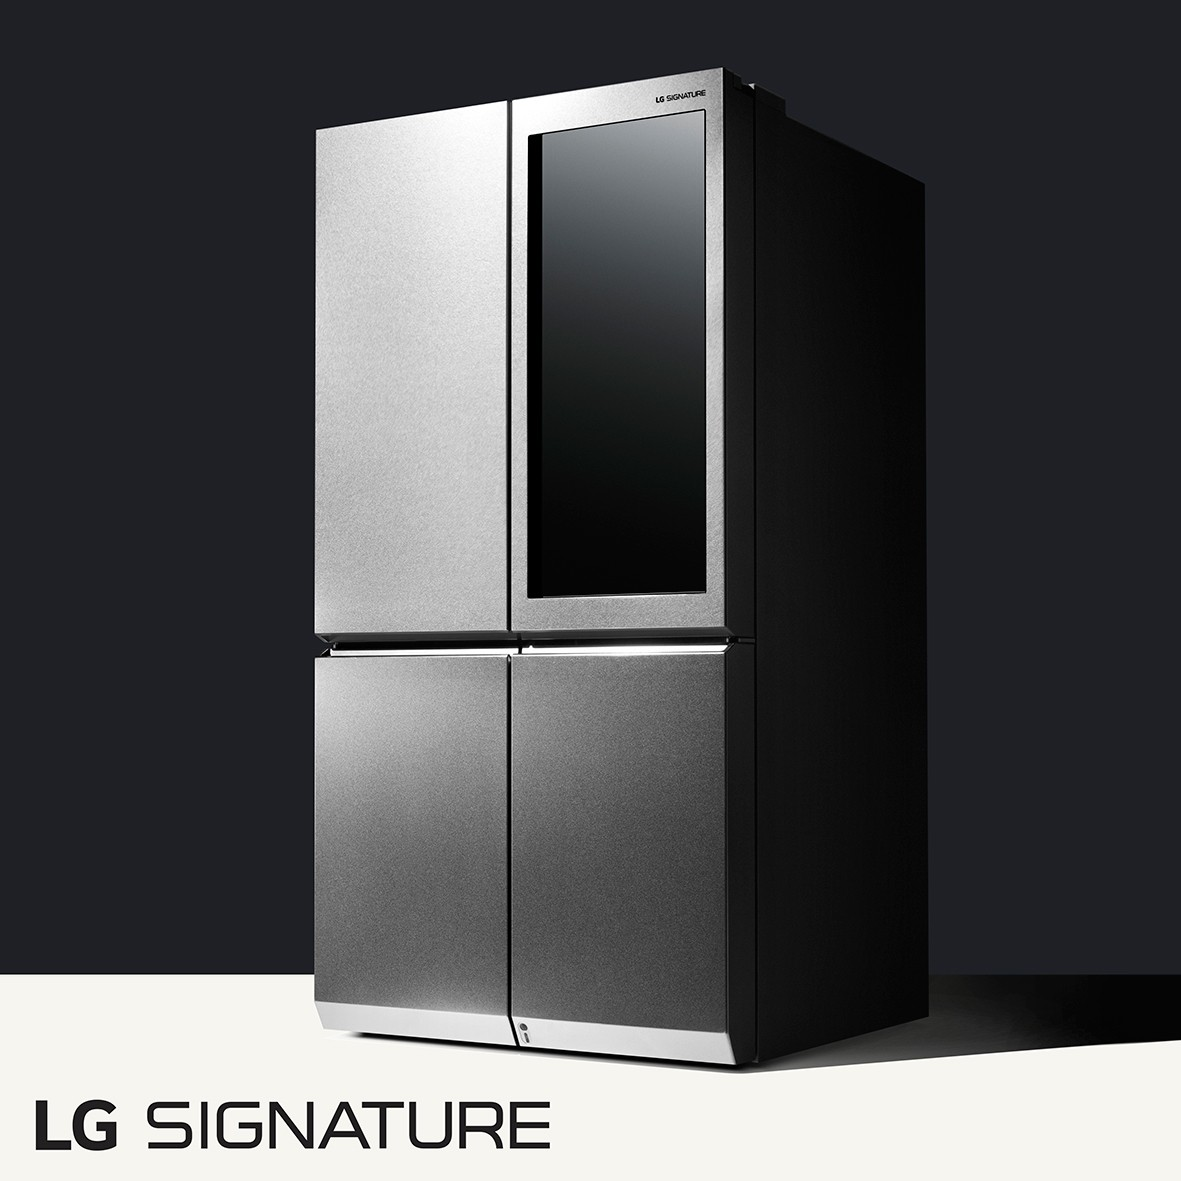 LG SIGNATURE's award-winning Door-in-Door™ design with added Knock-On Door-in-Door feature refrigerator.